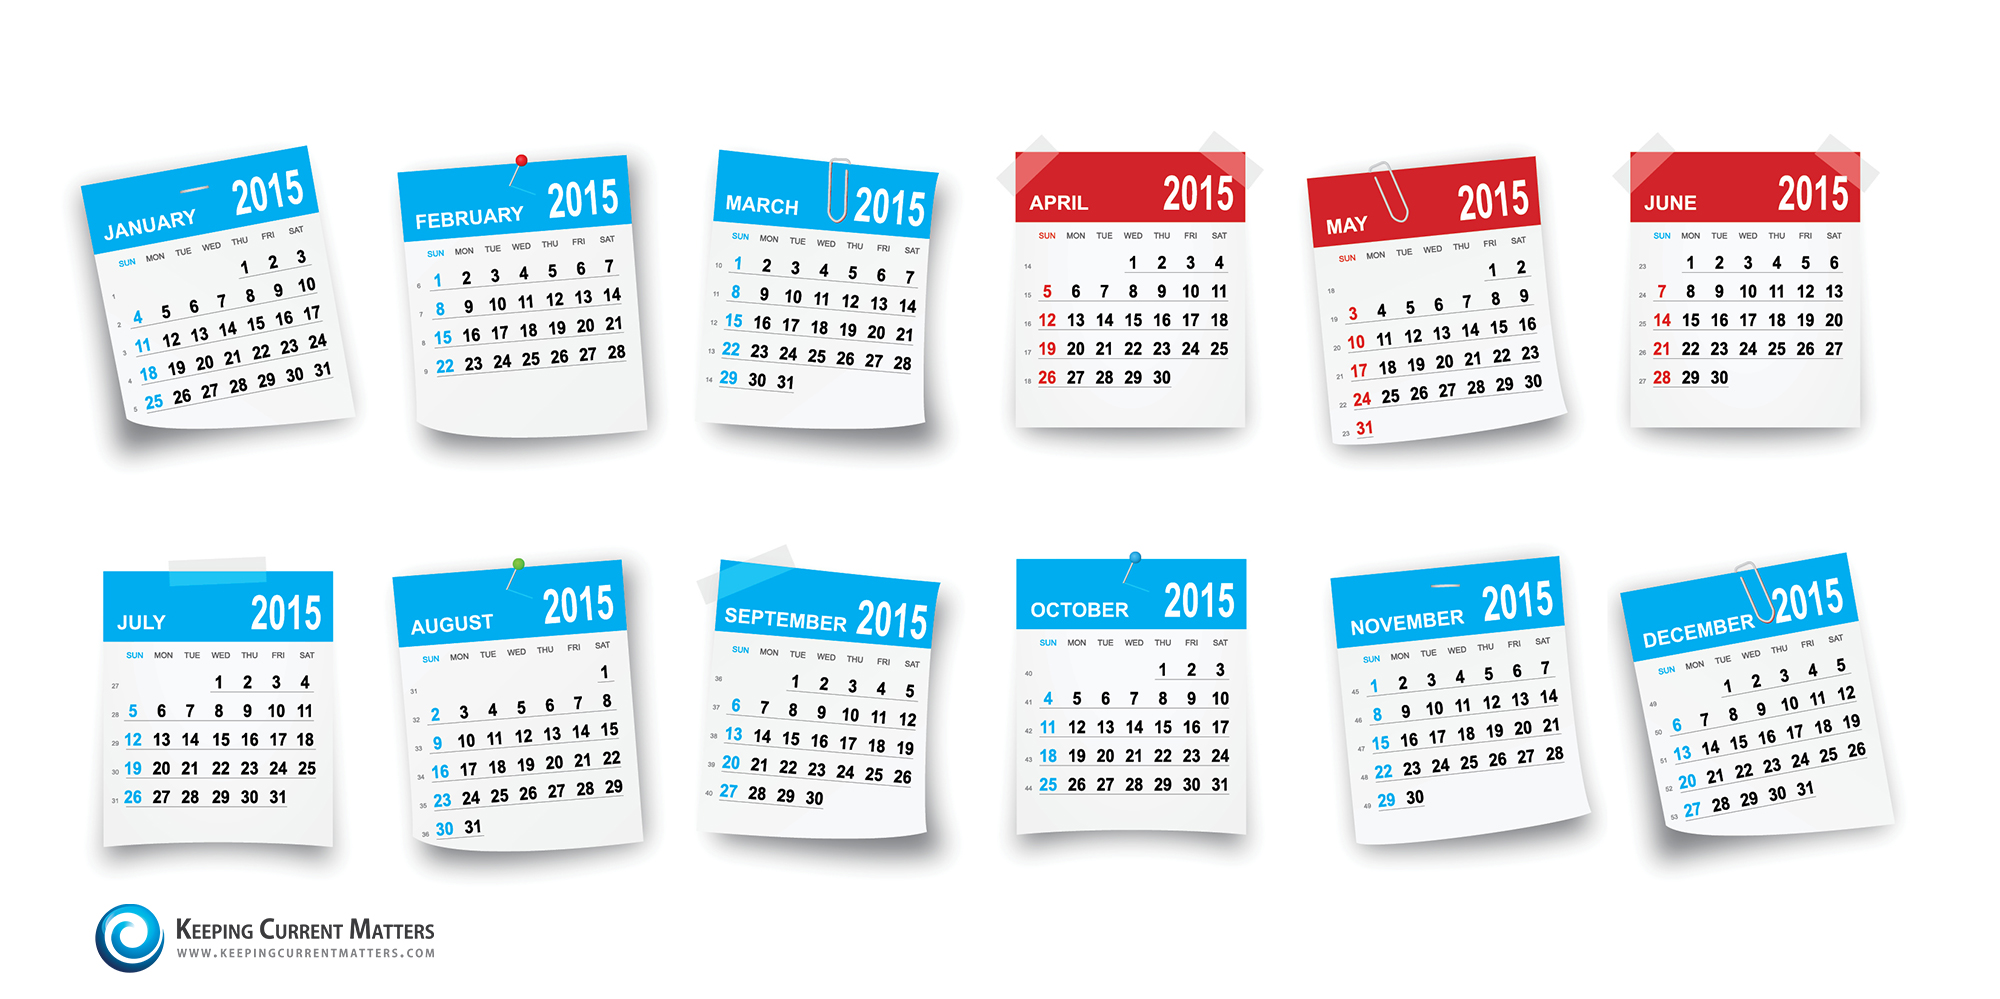 2015 Popular Selling Months | Keeping Current Matters